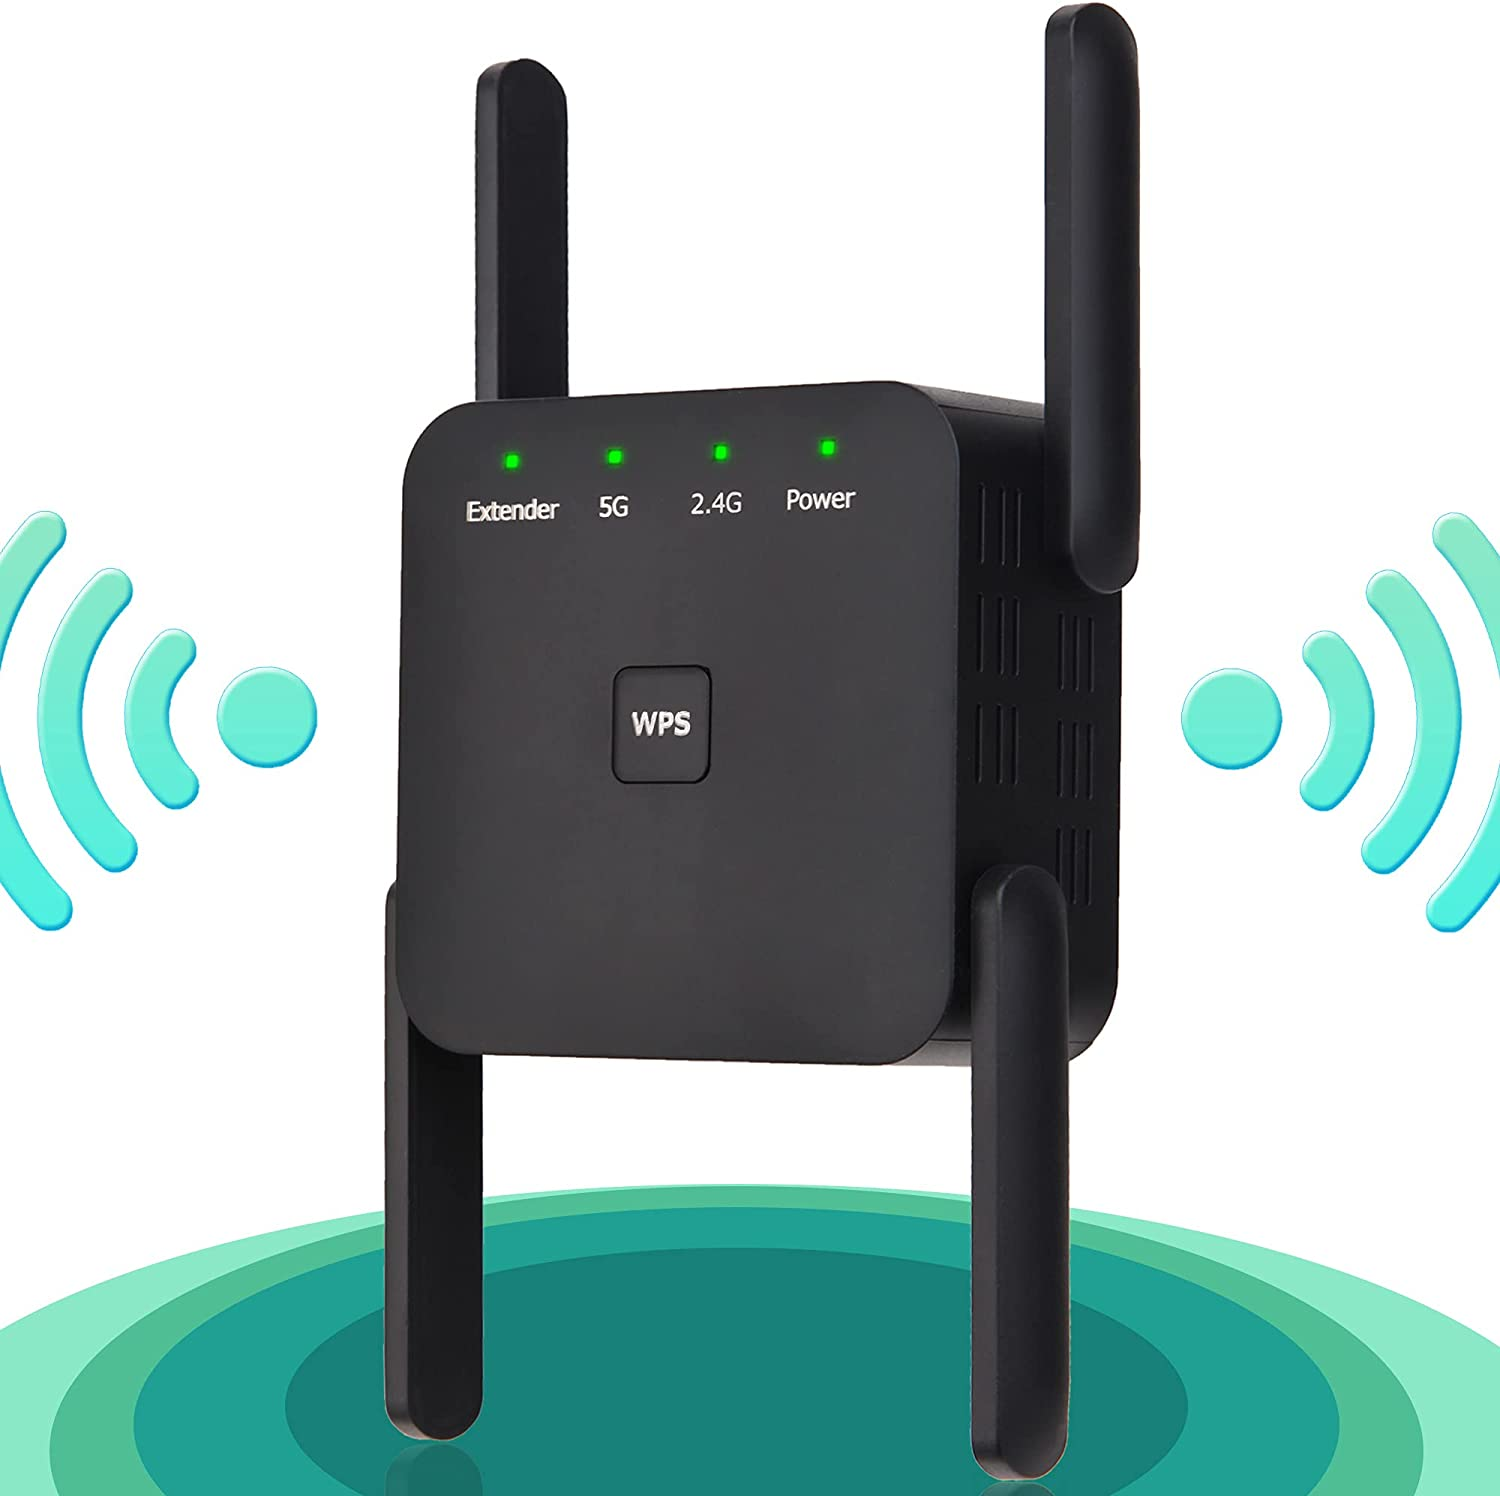 WiFi Extender, WiFi Booster, 1200mbps WiFi Extenders Signal Booster for Home, WiFi Signal Booster to Extend WiFi Signal WPS Easy Set WiFi Repeater 4 Antennas WiFi Booster and Signal Amplifier